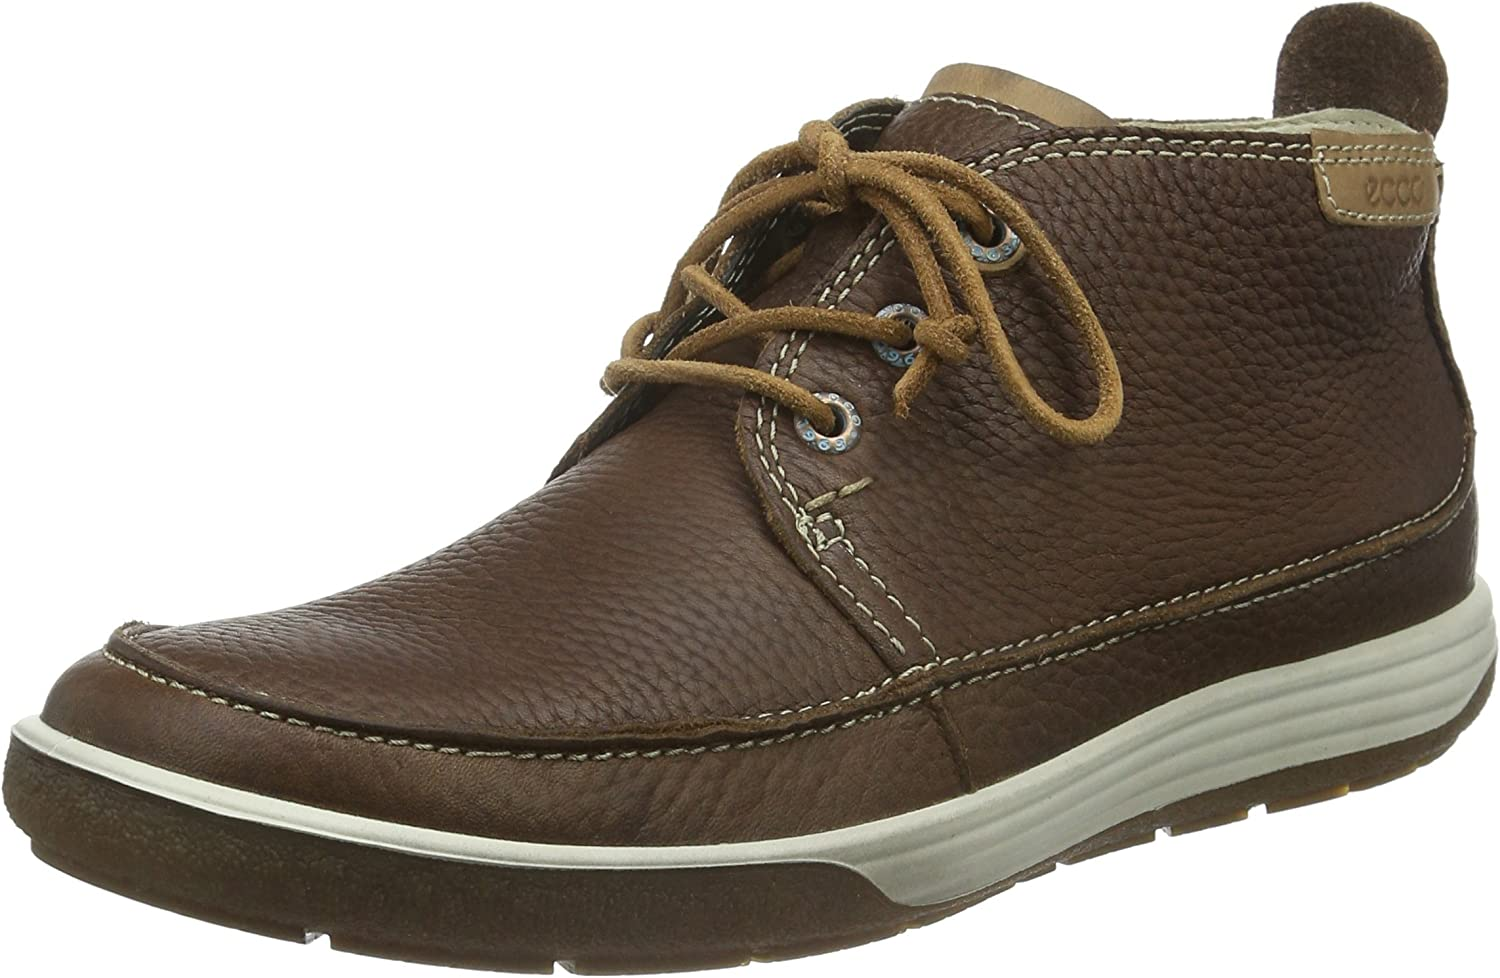 ECCO ECCO CHASE II, Women's Ankle Boots